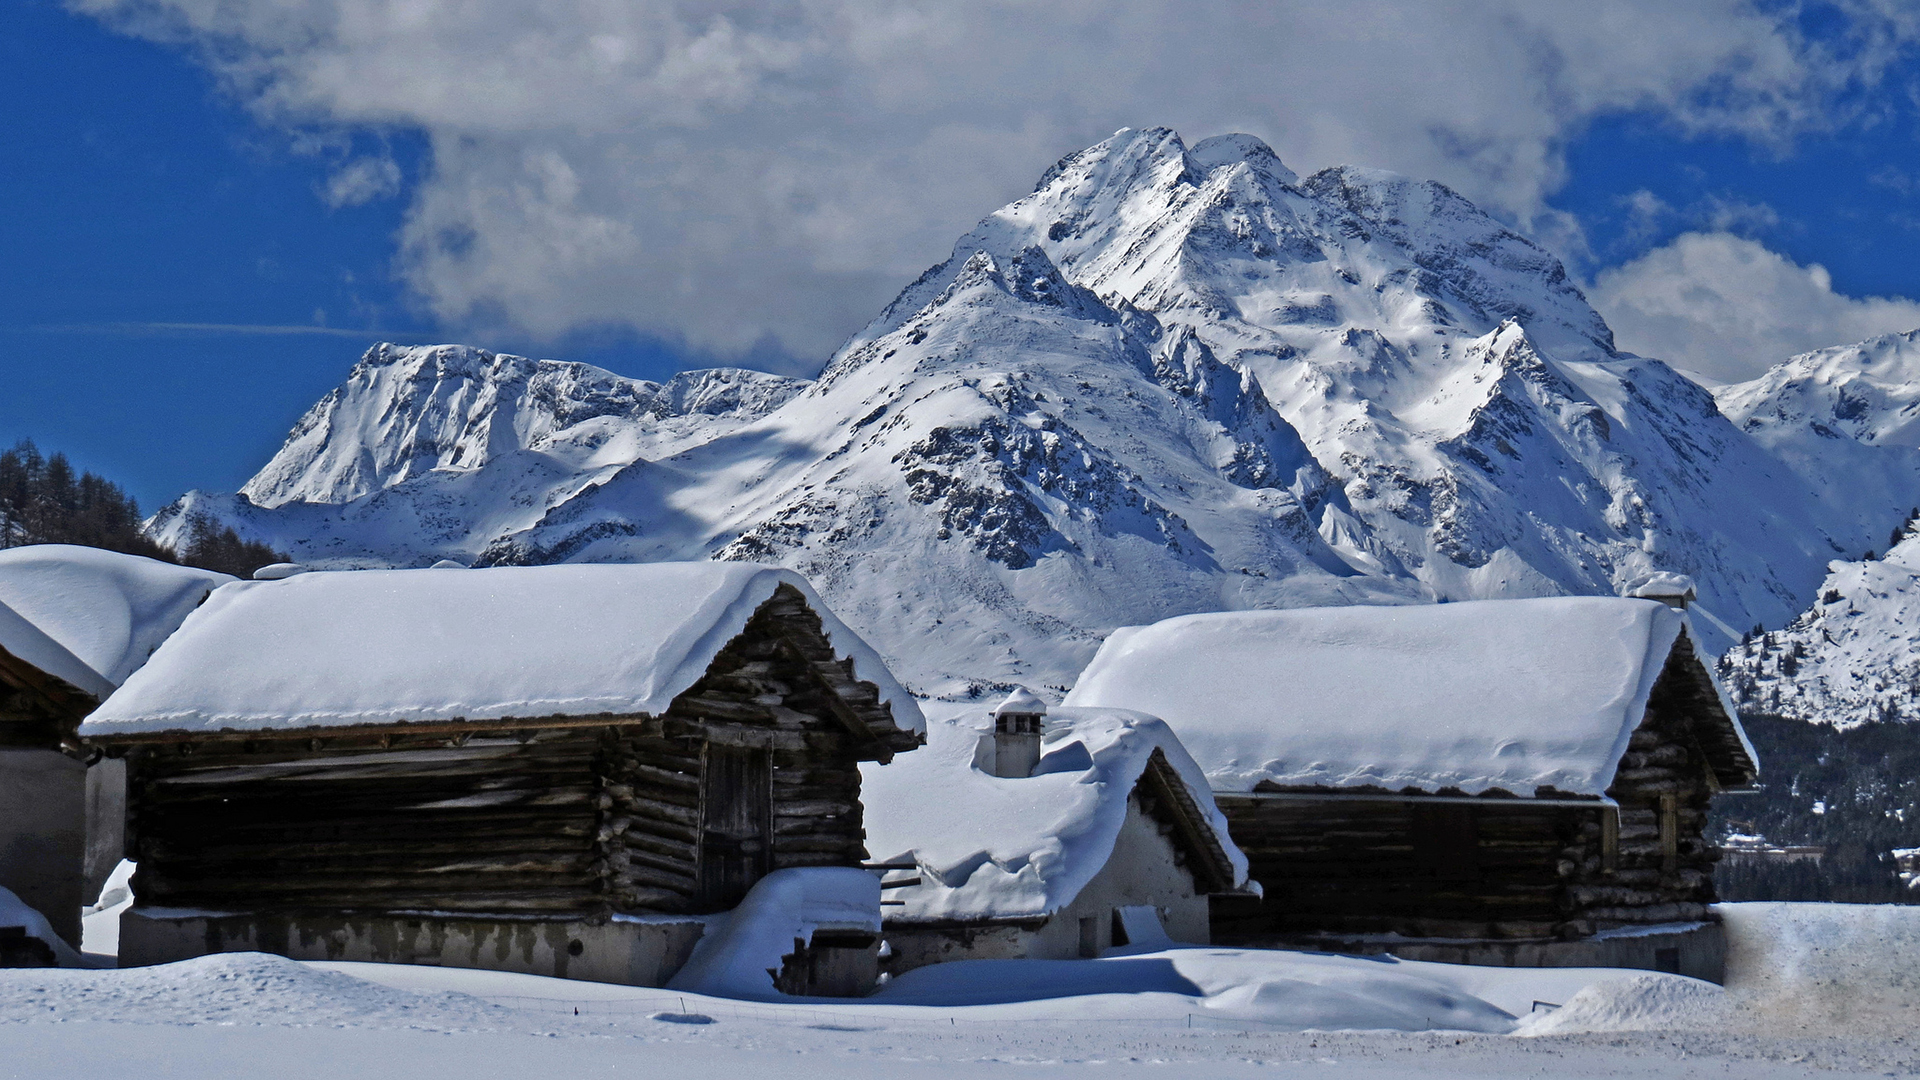 Related Pictures mountain cabin desktop background 1920x1080